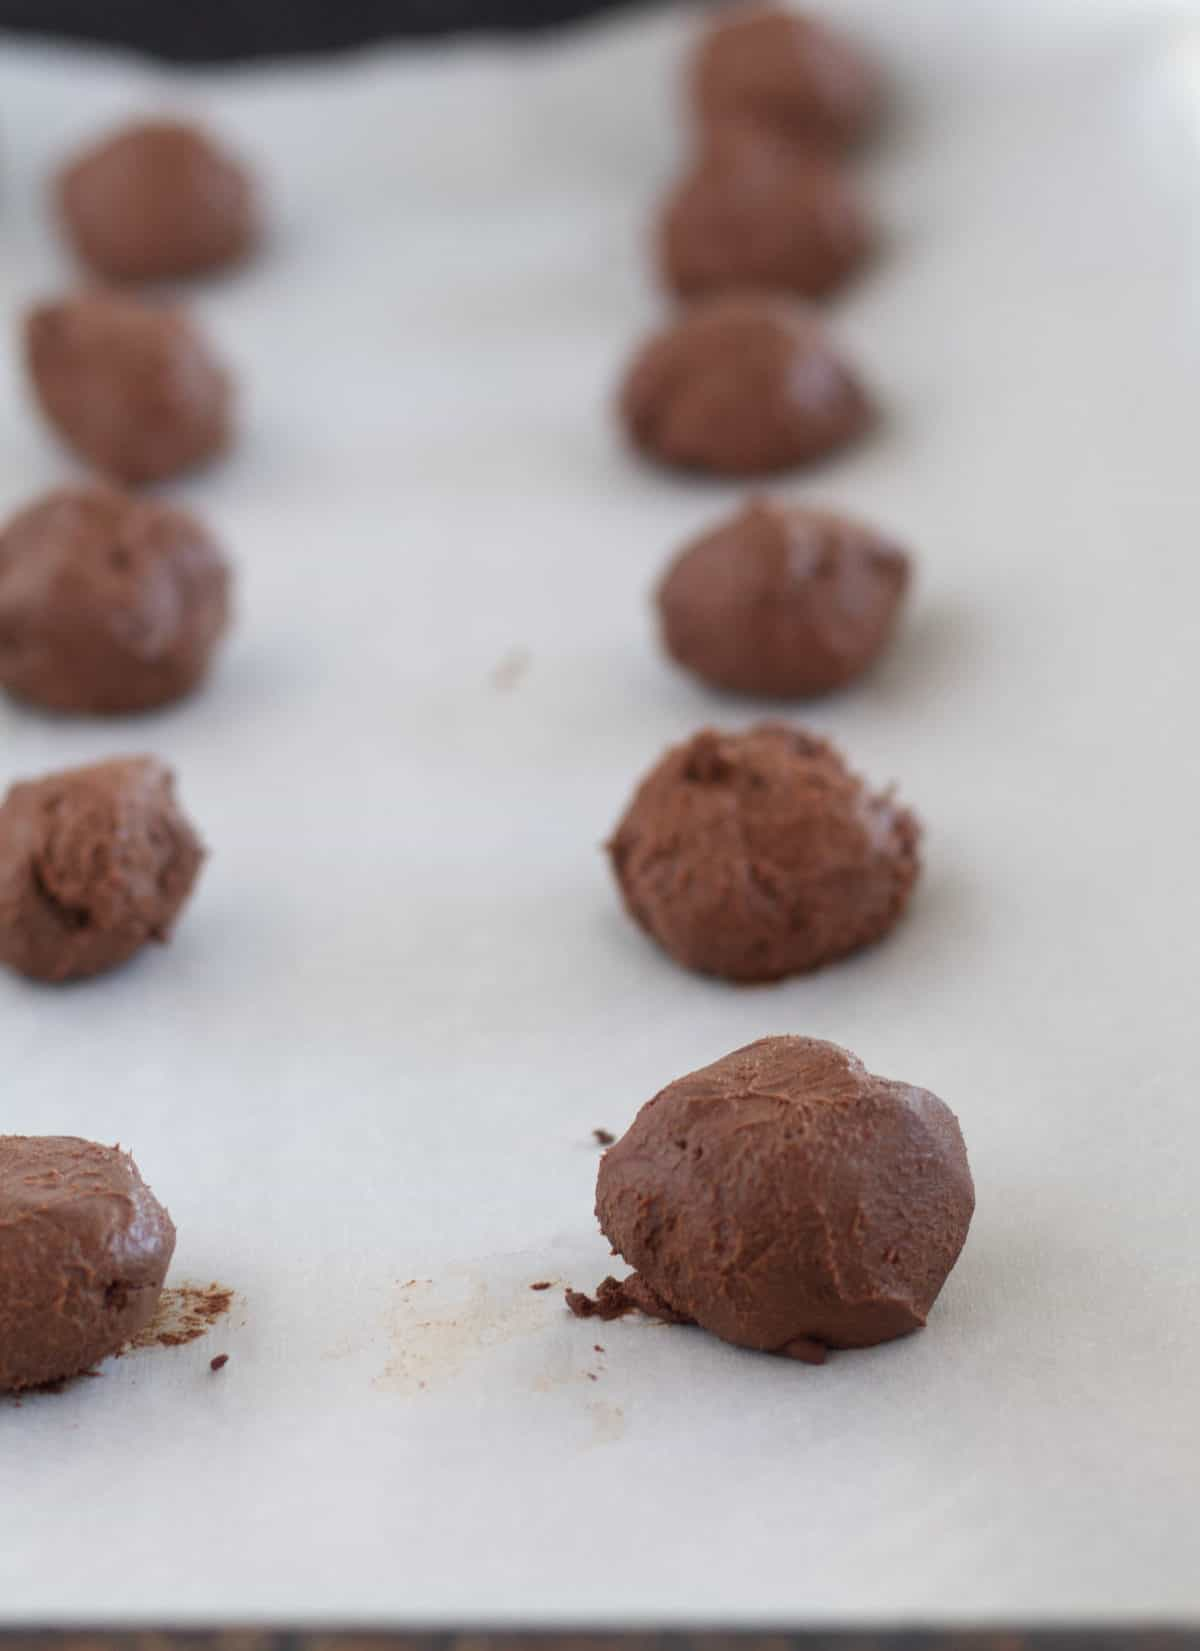 chocolate ganache rolled into balls on parchment lined baking sheet